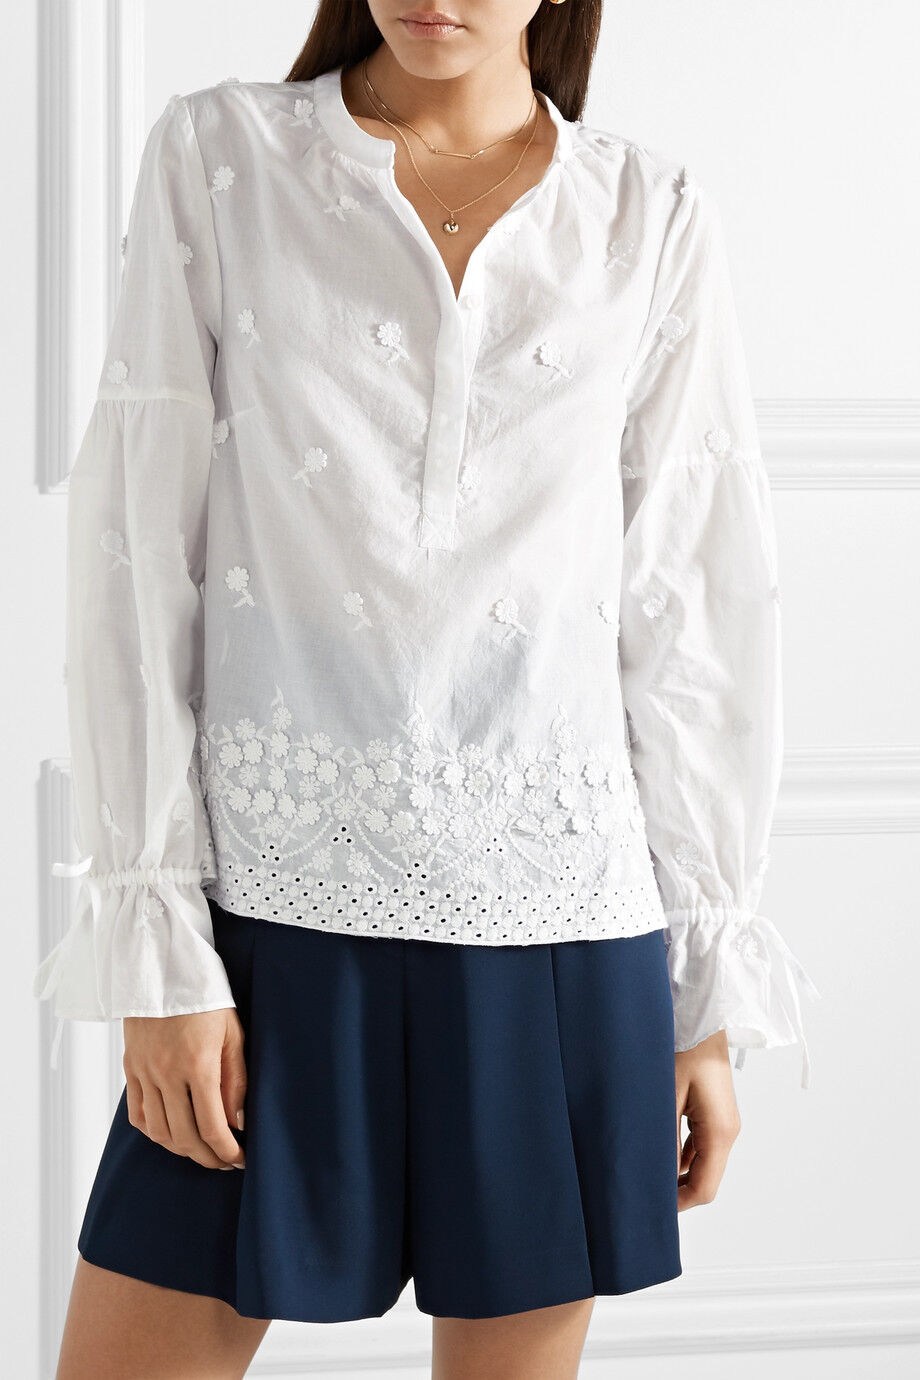 NWT  Designer J.CREW Falling Blossoms Broderie Anglaise  SHIRT  Weiß